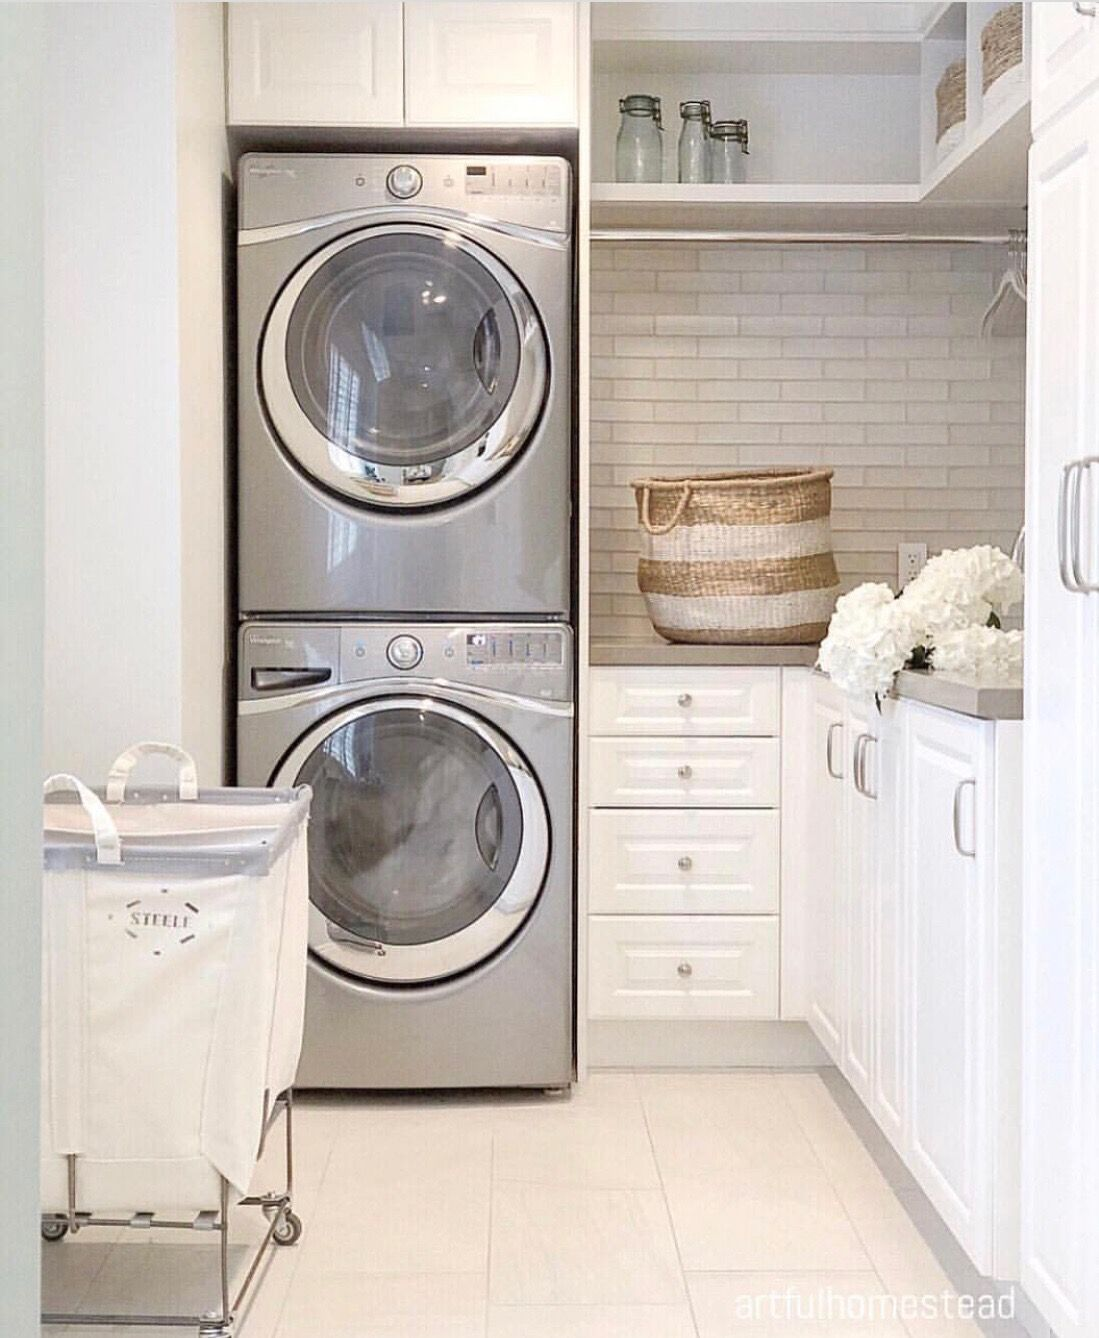 Laundry Room With Stacked Washer